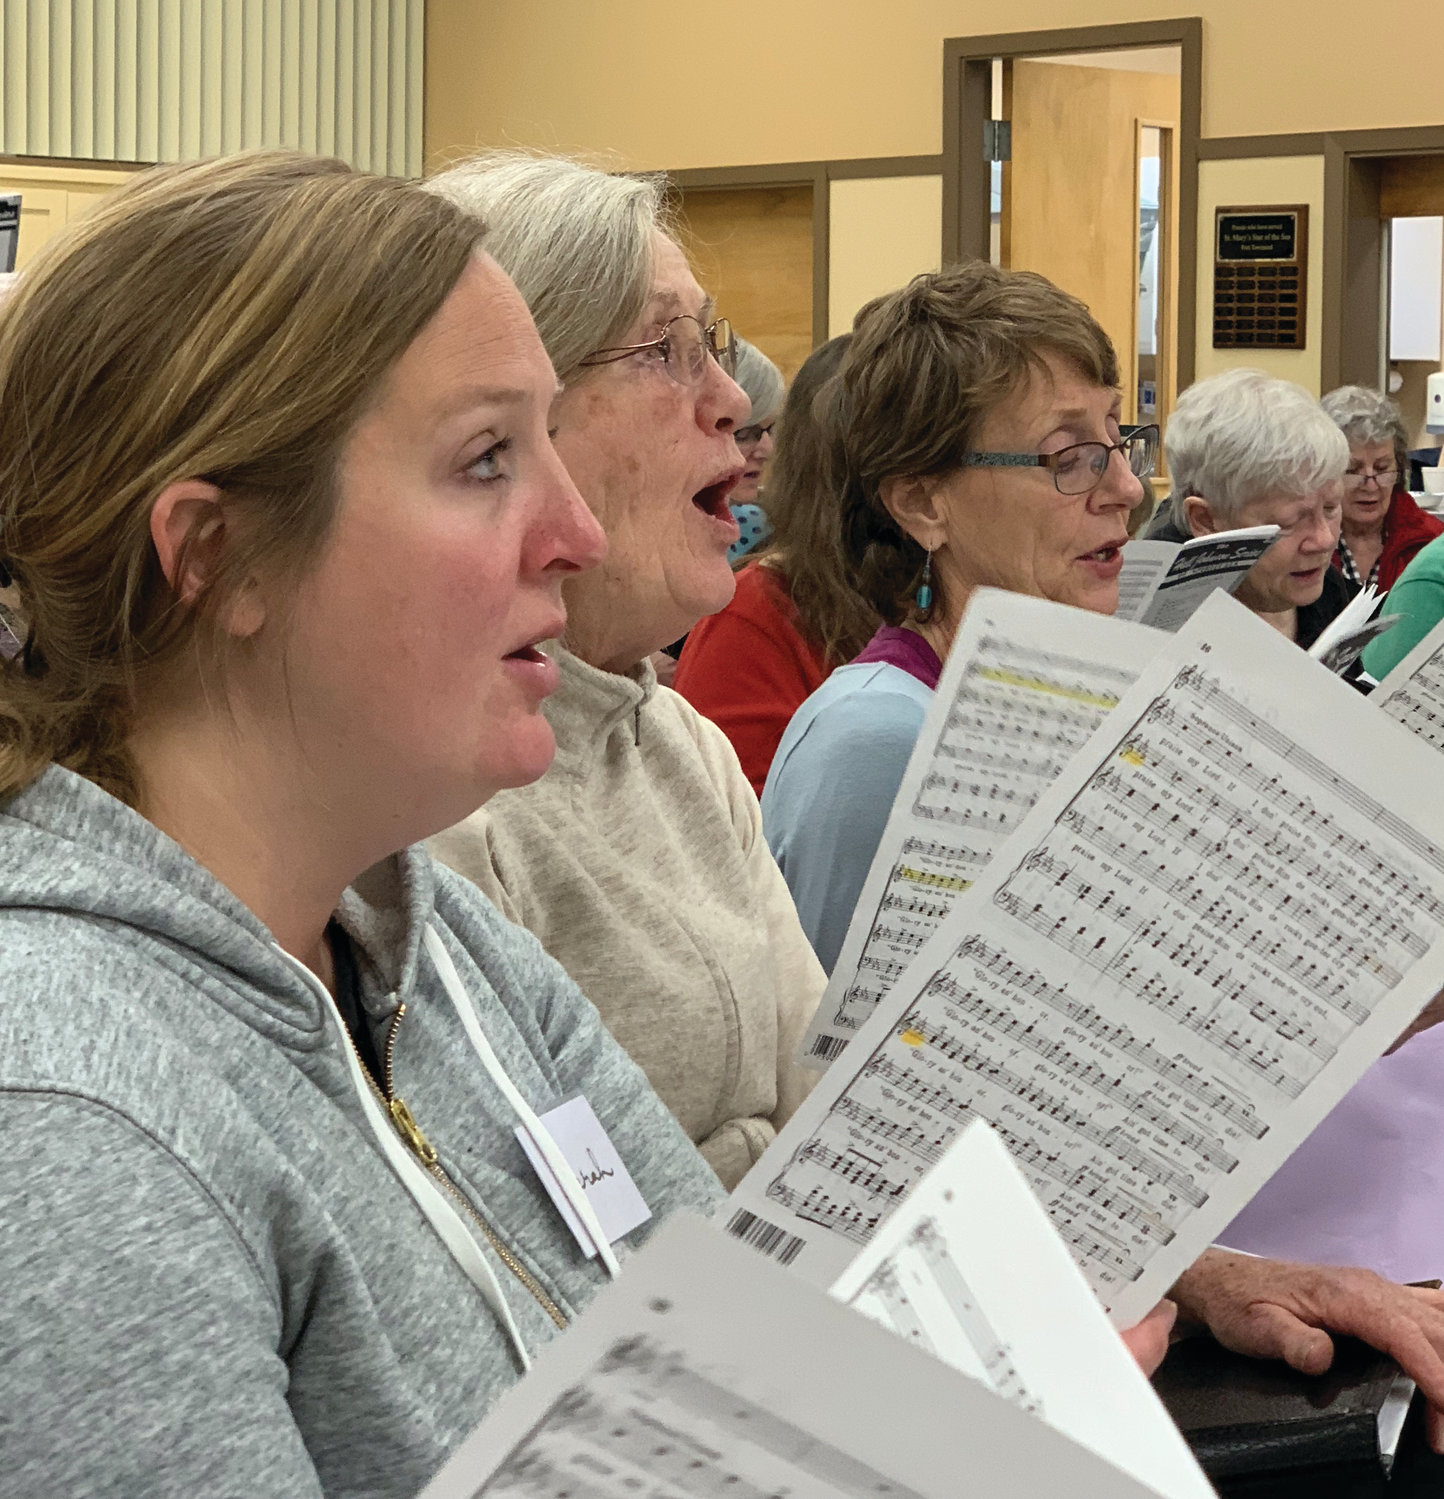 Choristers in the soprano section rehearse a spiritual.